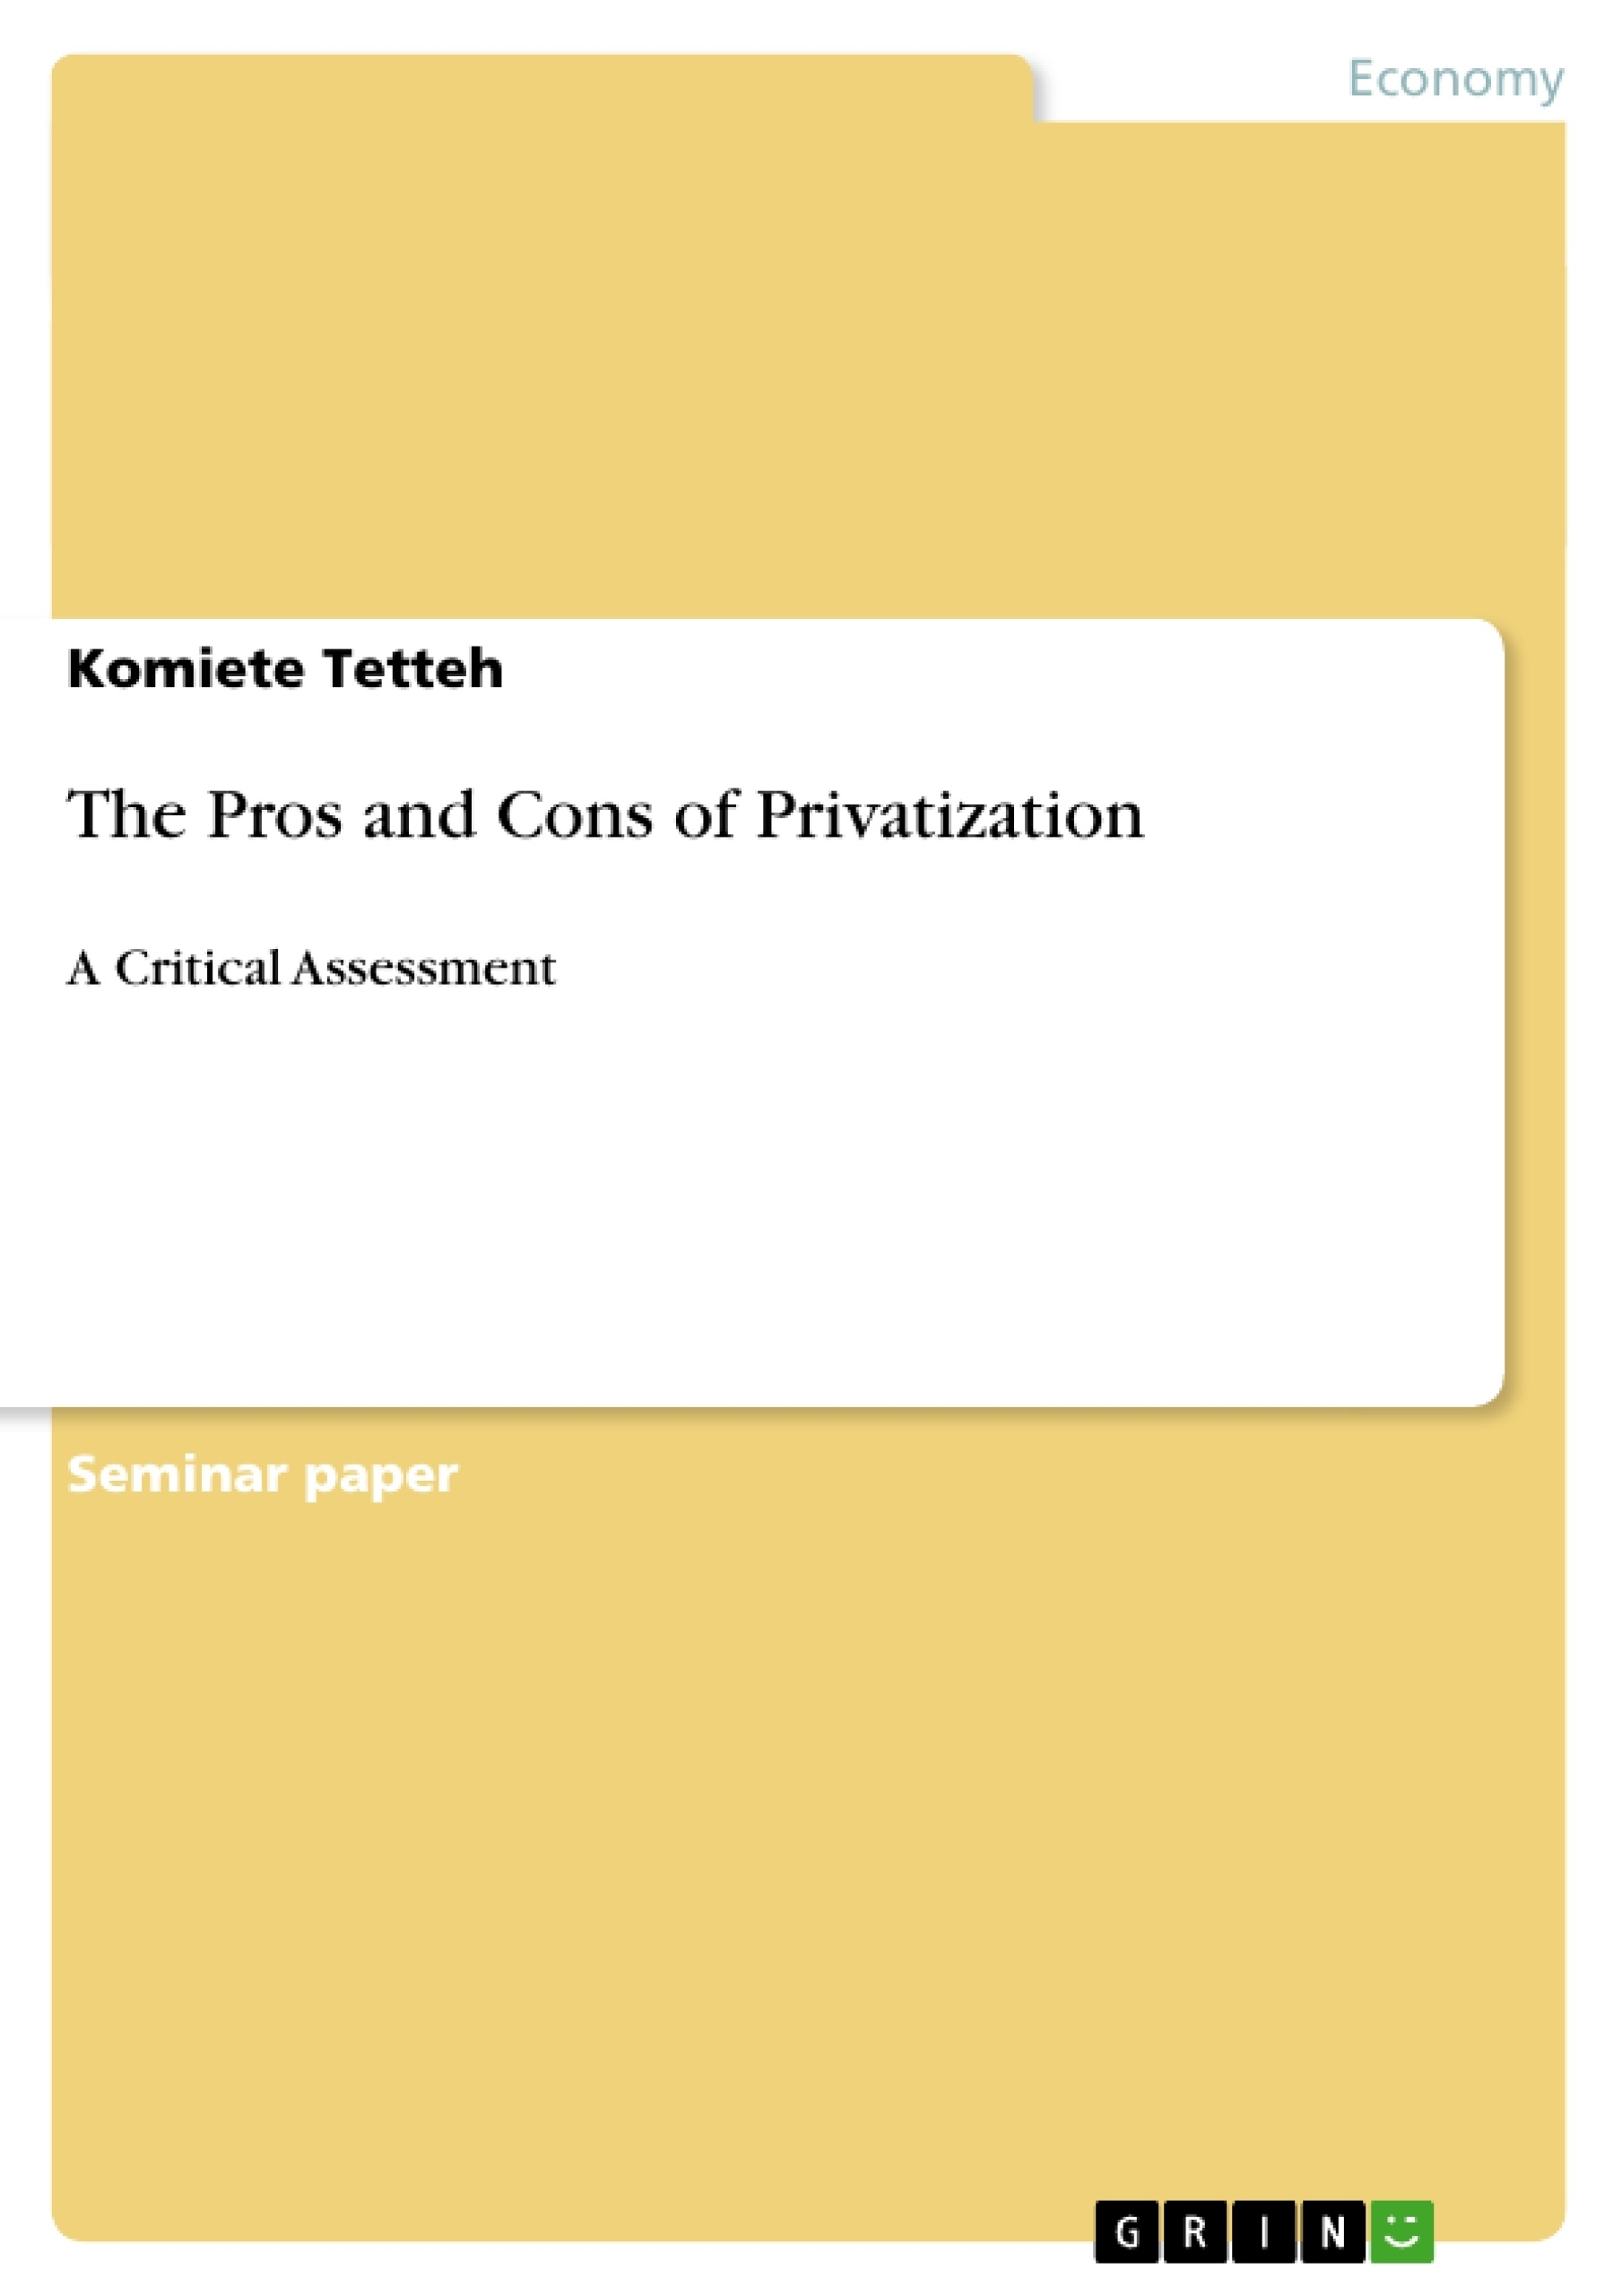 privatization of prisons thesis Private prisons and interest groups privately owned prisons began to emerge in the mid privatization of prisons was initially expected not only relieve the overcrowding of prisons but also to more about private prisons and interest groups essay thesis: private prisons 400.